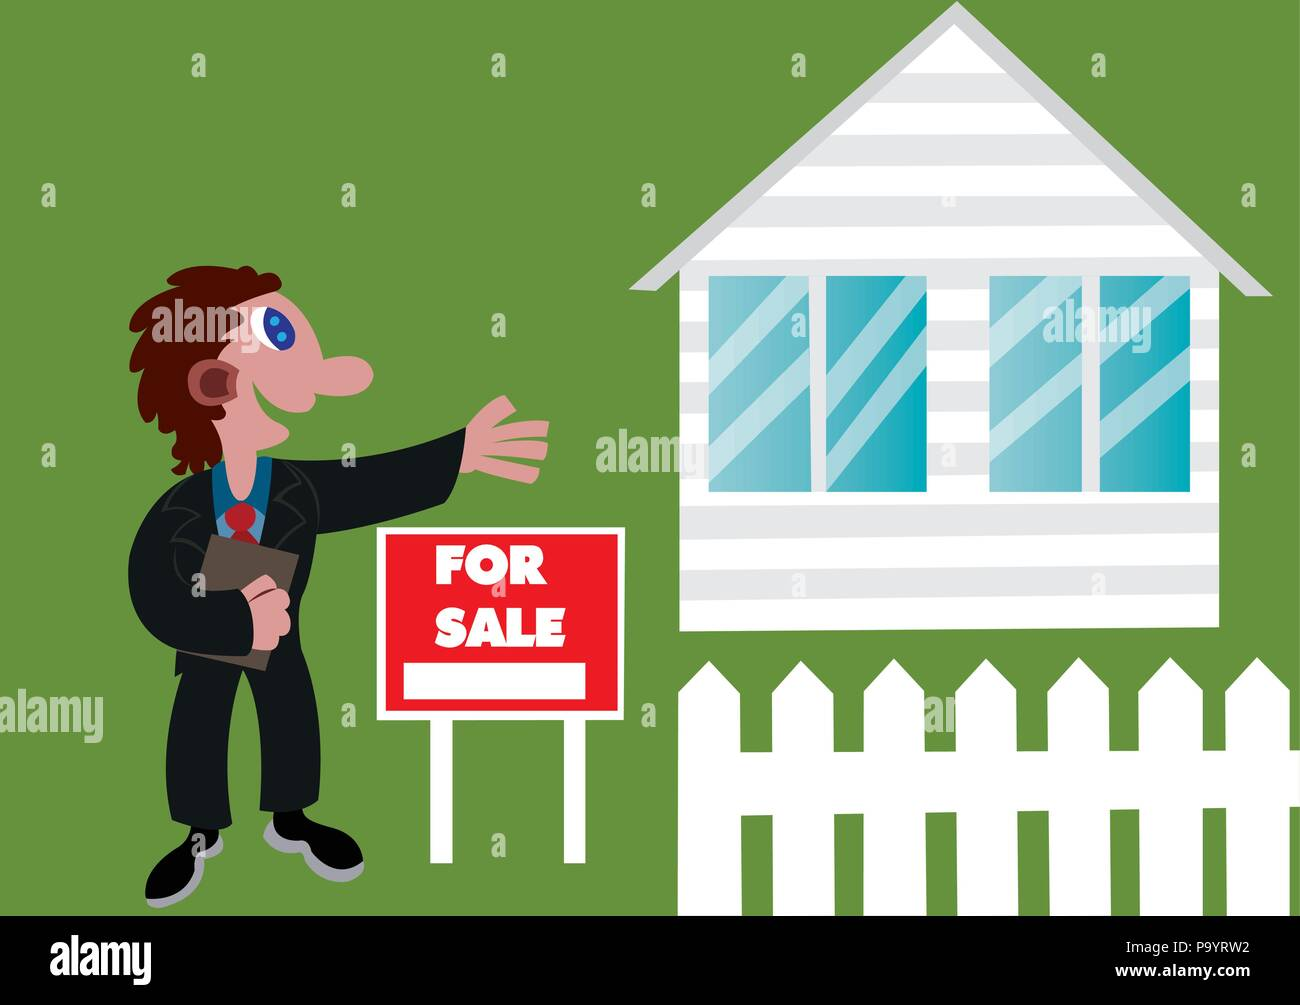 a real estate agent advertising a foreclosed home, - Stock Image